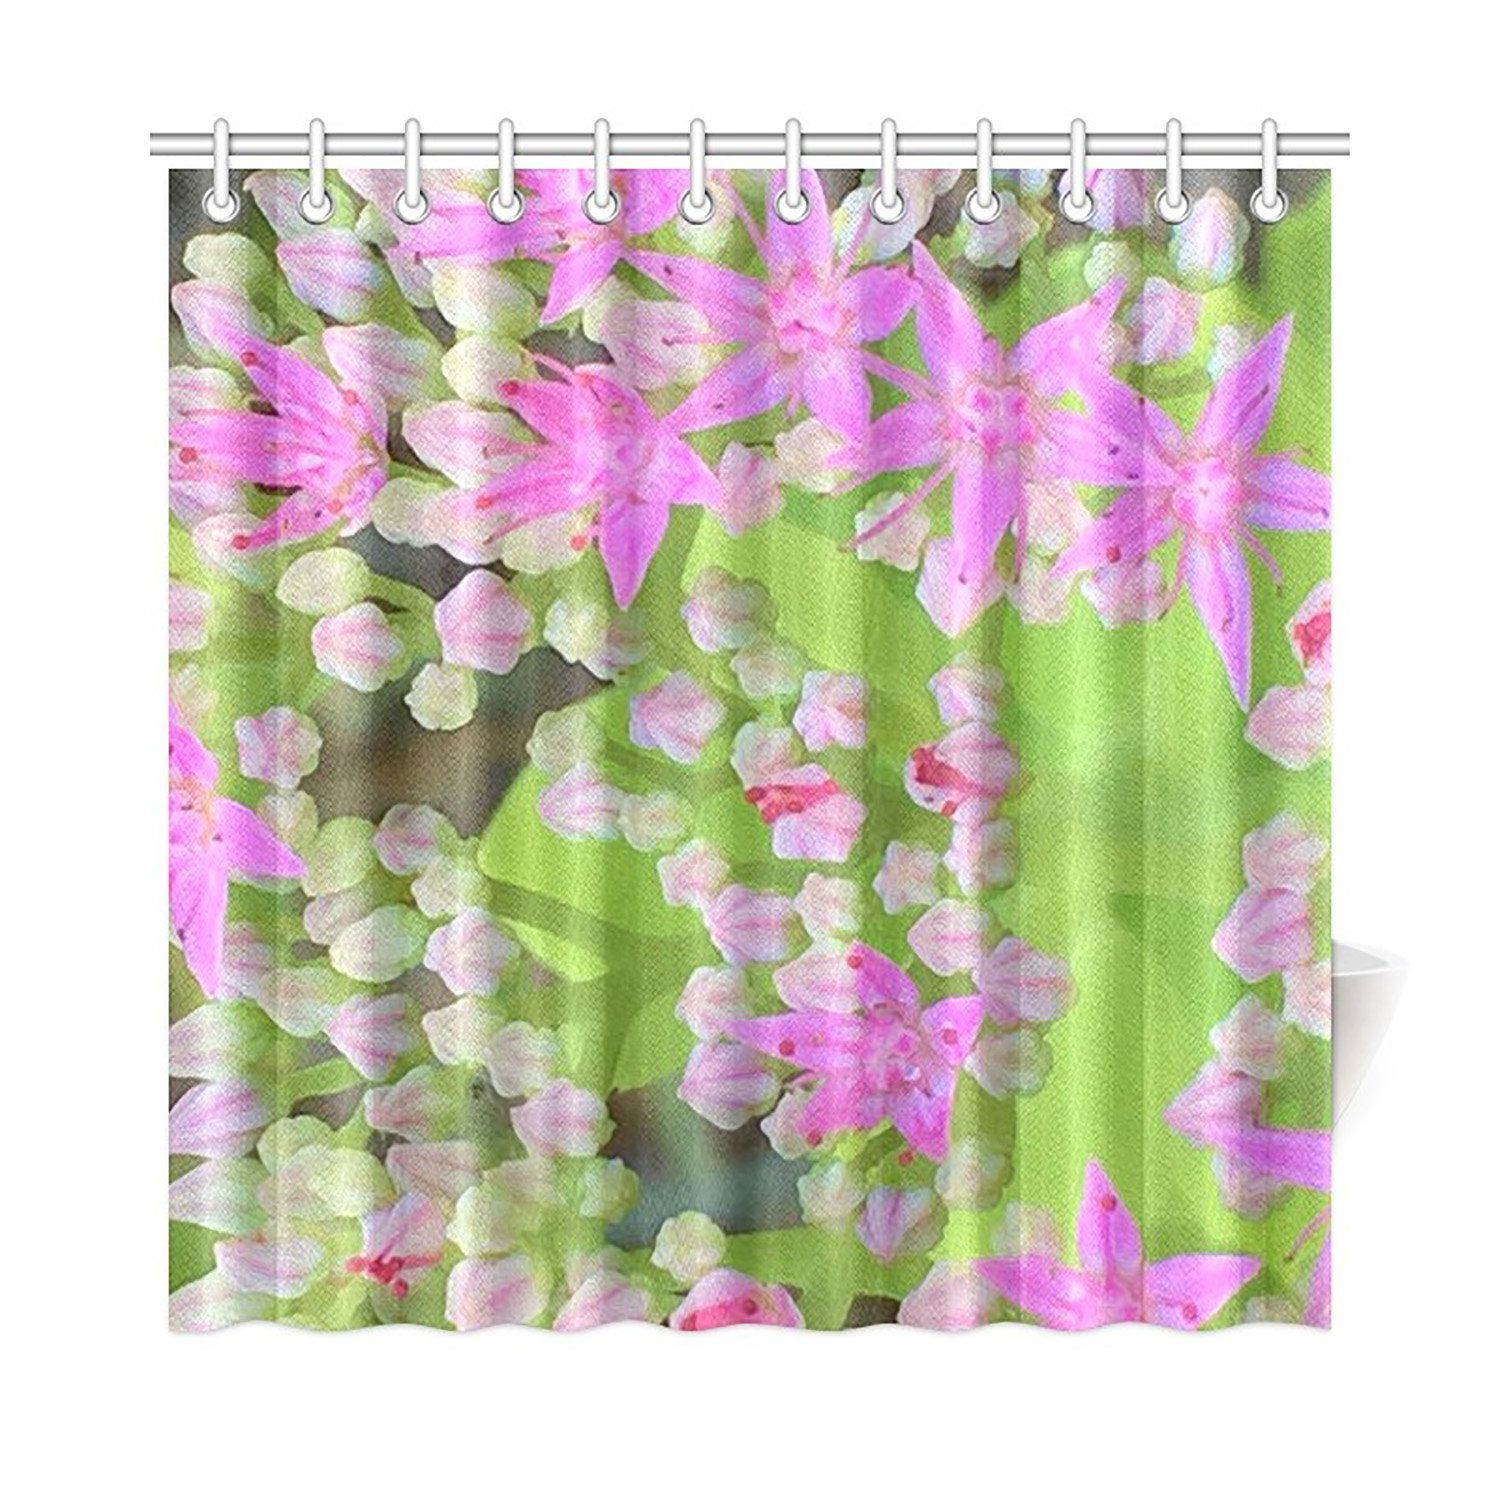 Shower Curtain Hot Pink Succulent Sedum With Fleshy Green Leaves